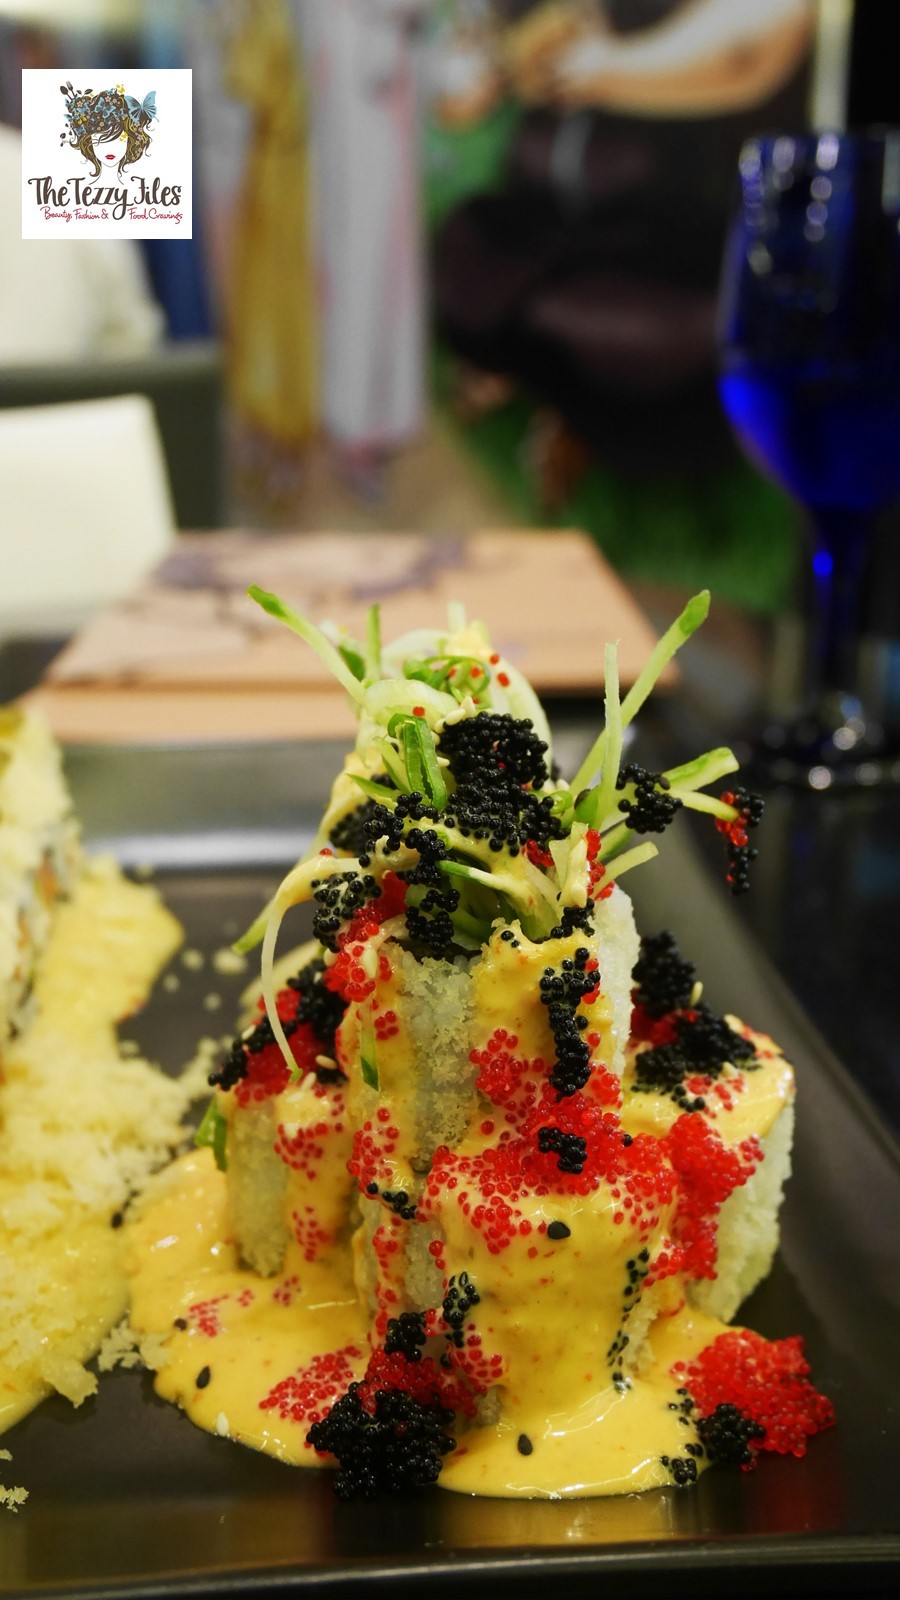 Manga Sushi The Dubai Mall review by The Tezzy Files Dubai Food Blogger (12)